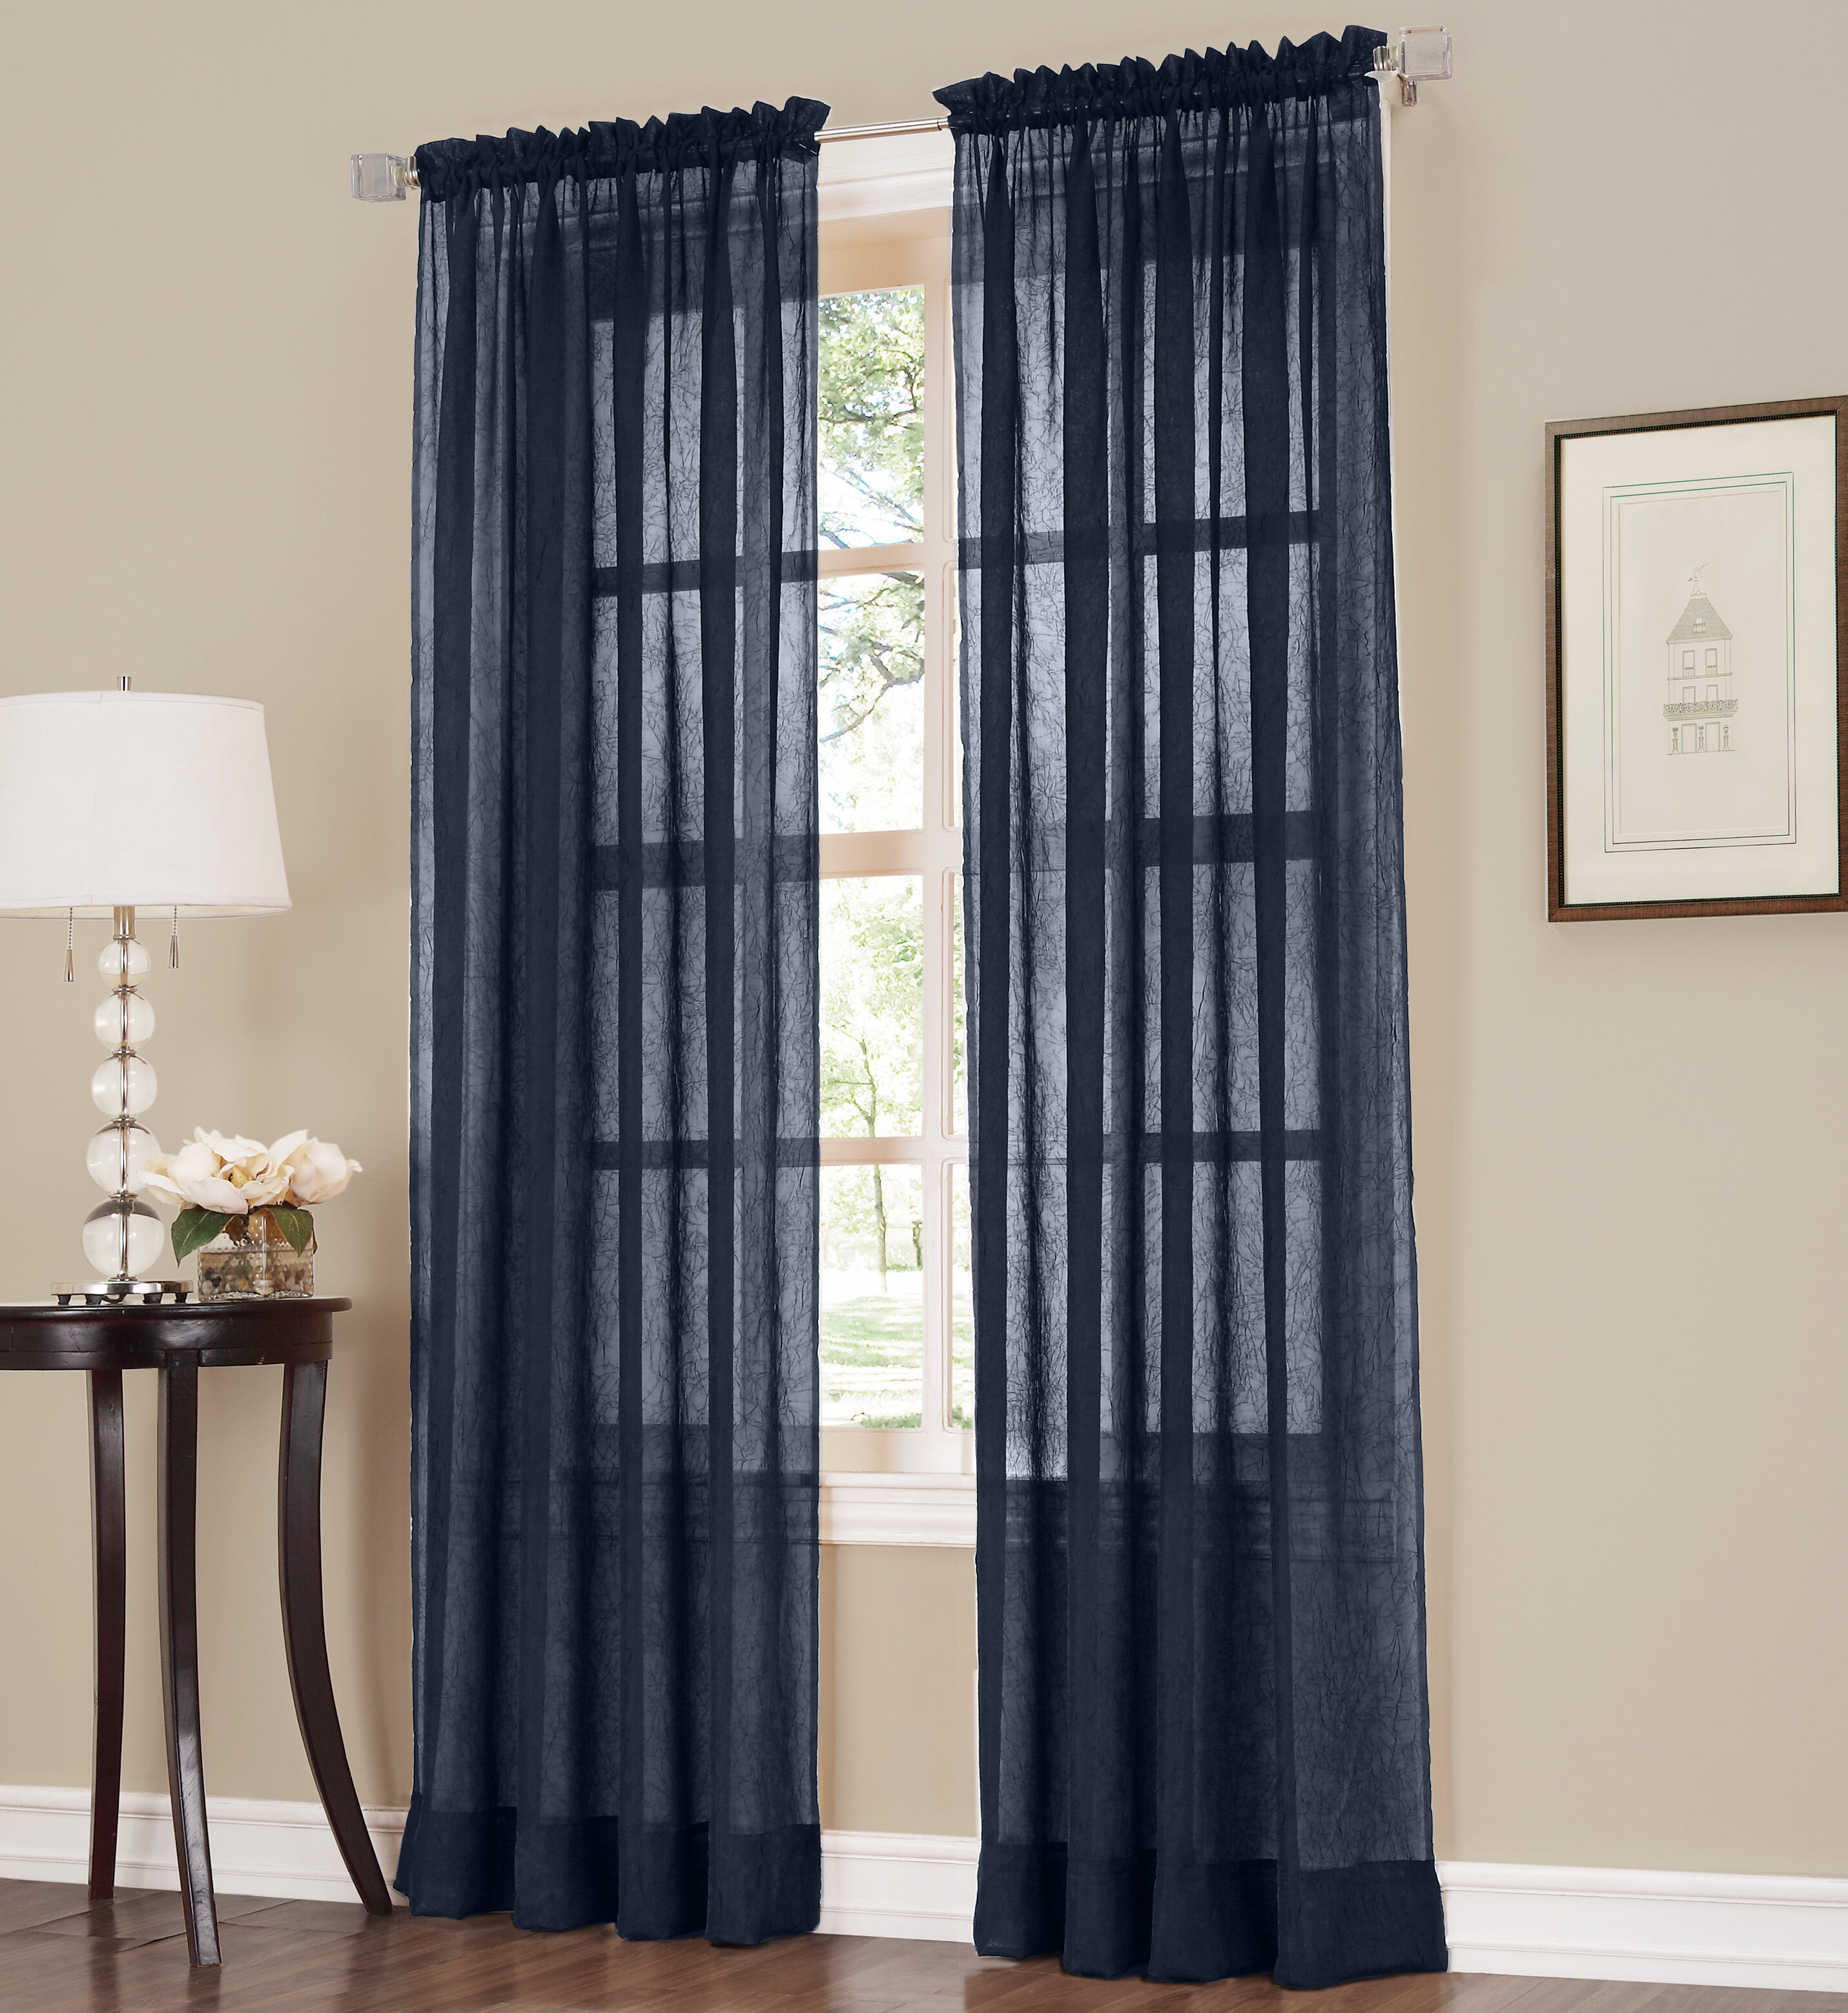 blackout pinterest sheer voile heading with picture ripplefold elegant and curtains behind bedroom curtain of